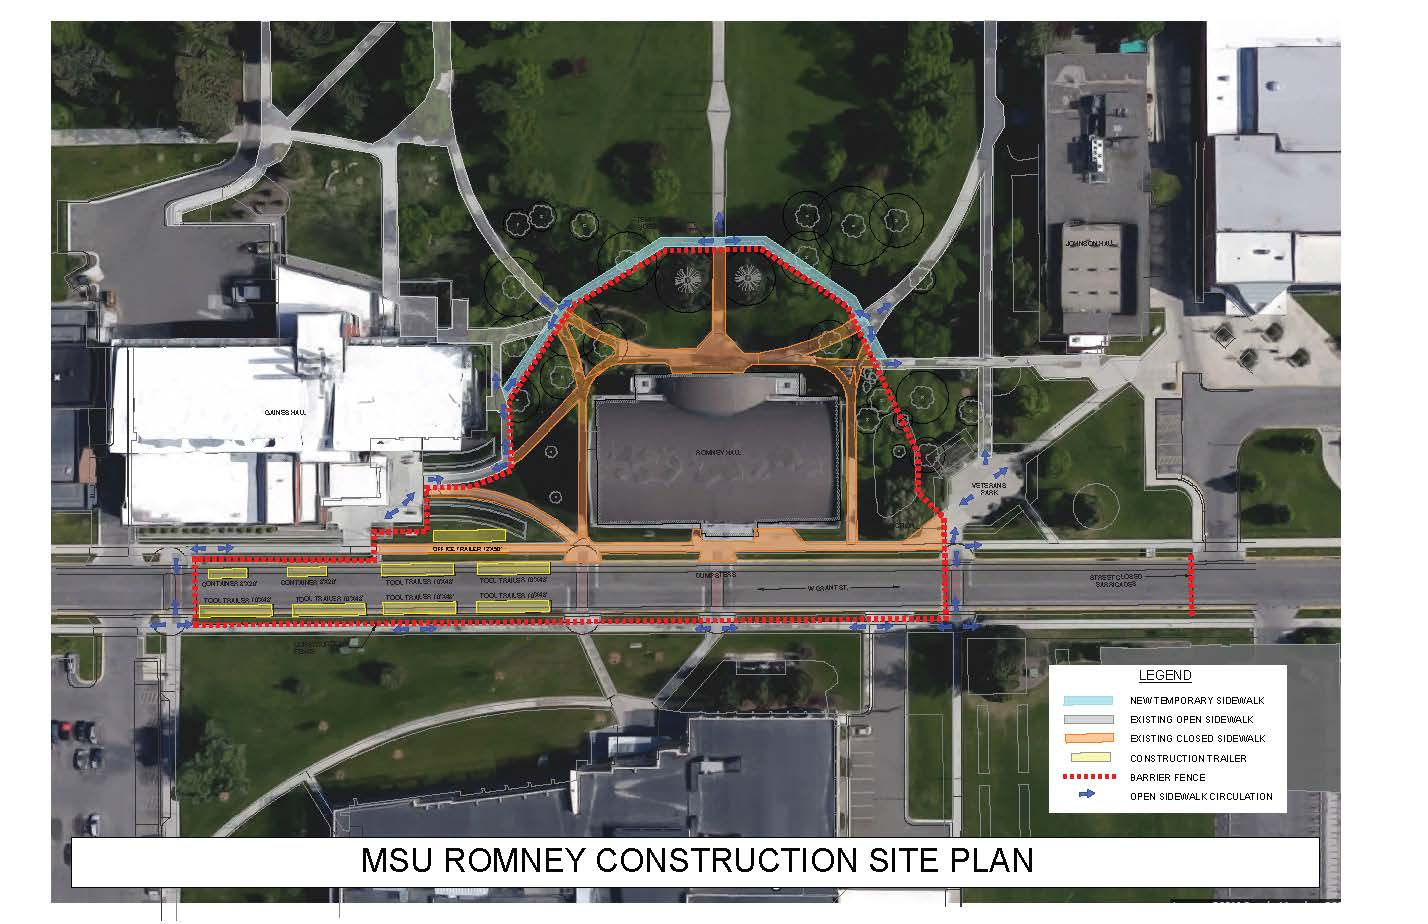 Romney Construction Site Plan